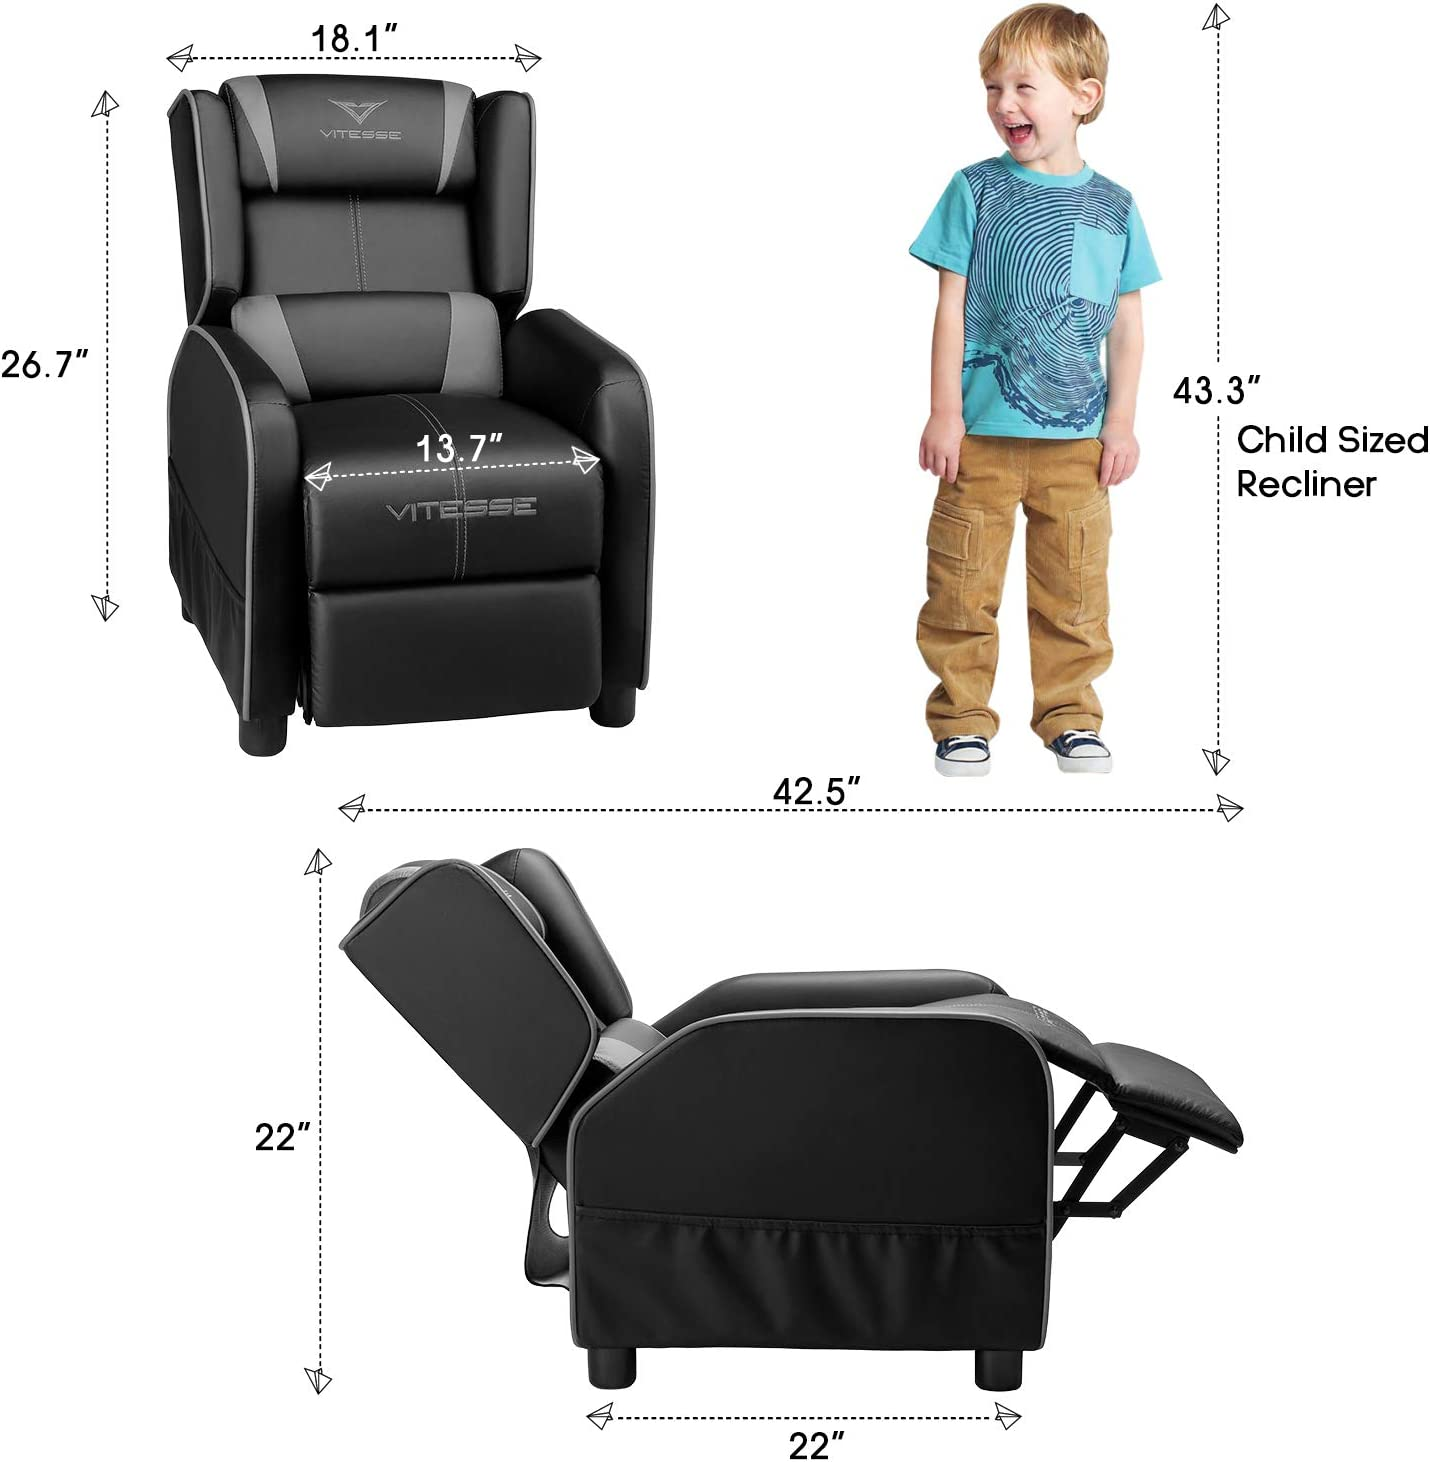 Vitesse Kids Recliner Chair for Boys, Girls, and Toddlers.